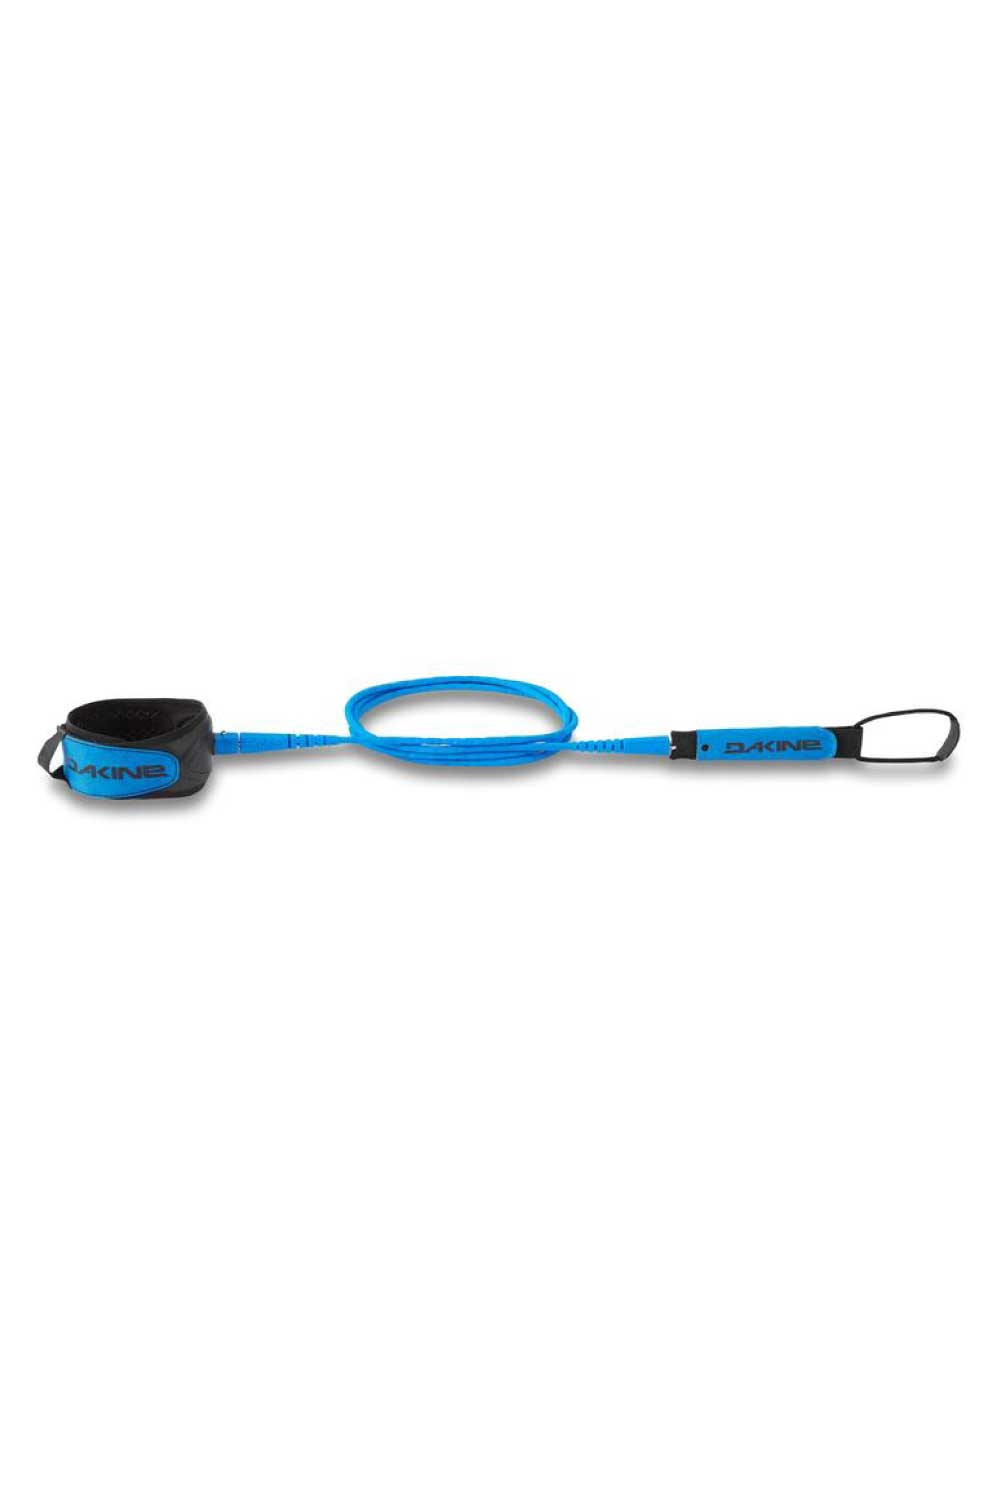 6ft Dakine Kaimana Pro Comp Leash Legrope Leash